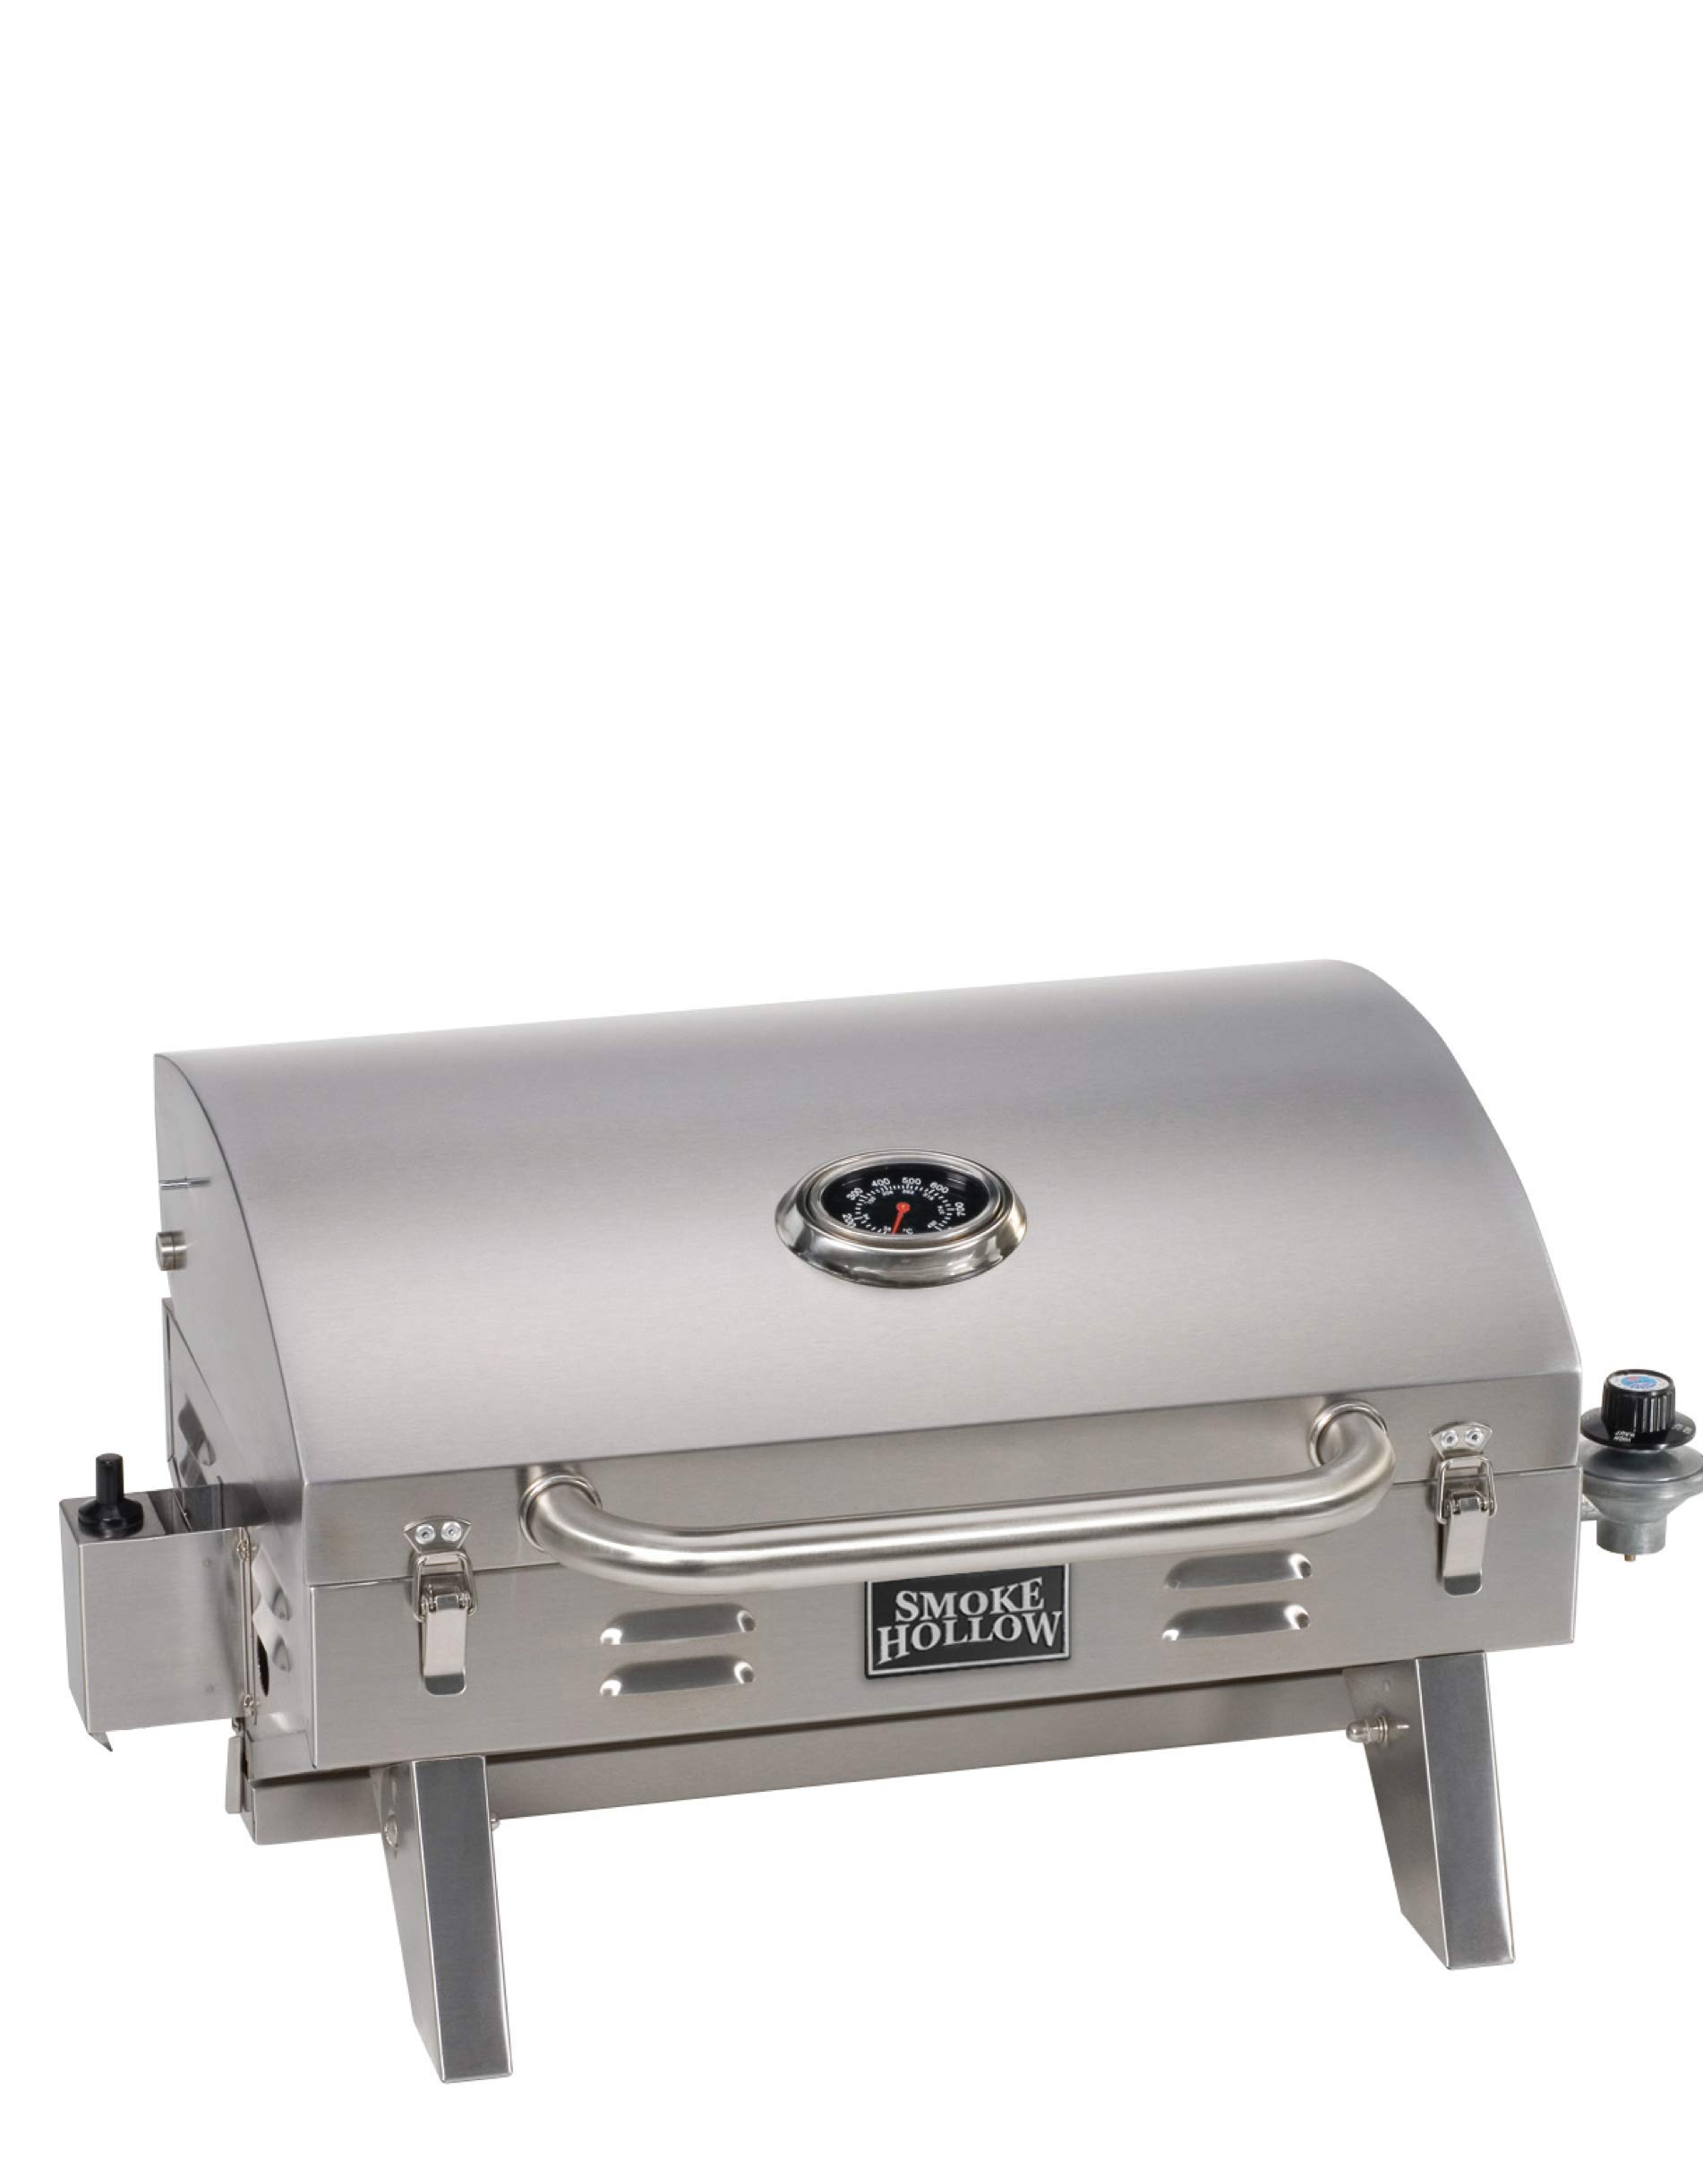 Smoke Hollow SH19030819 PT300B Propane Tabletop Grill, Stainless Steel